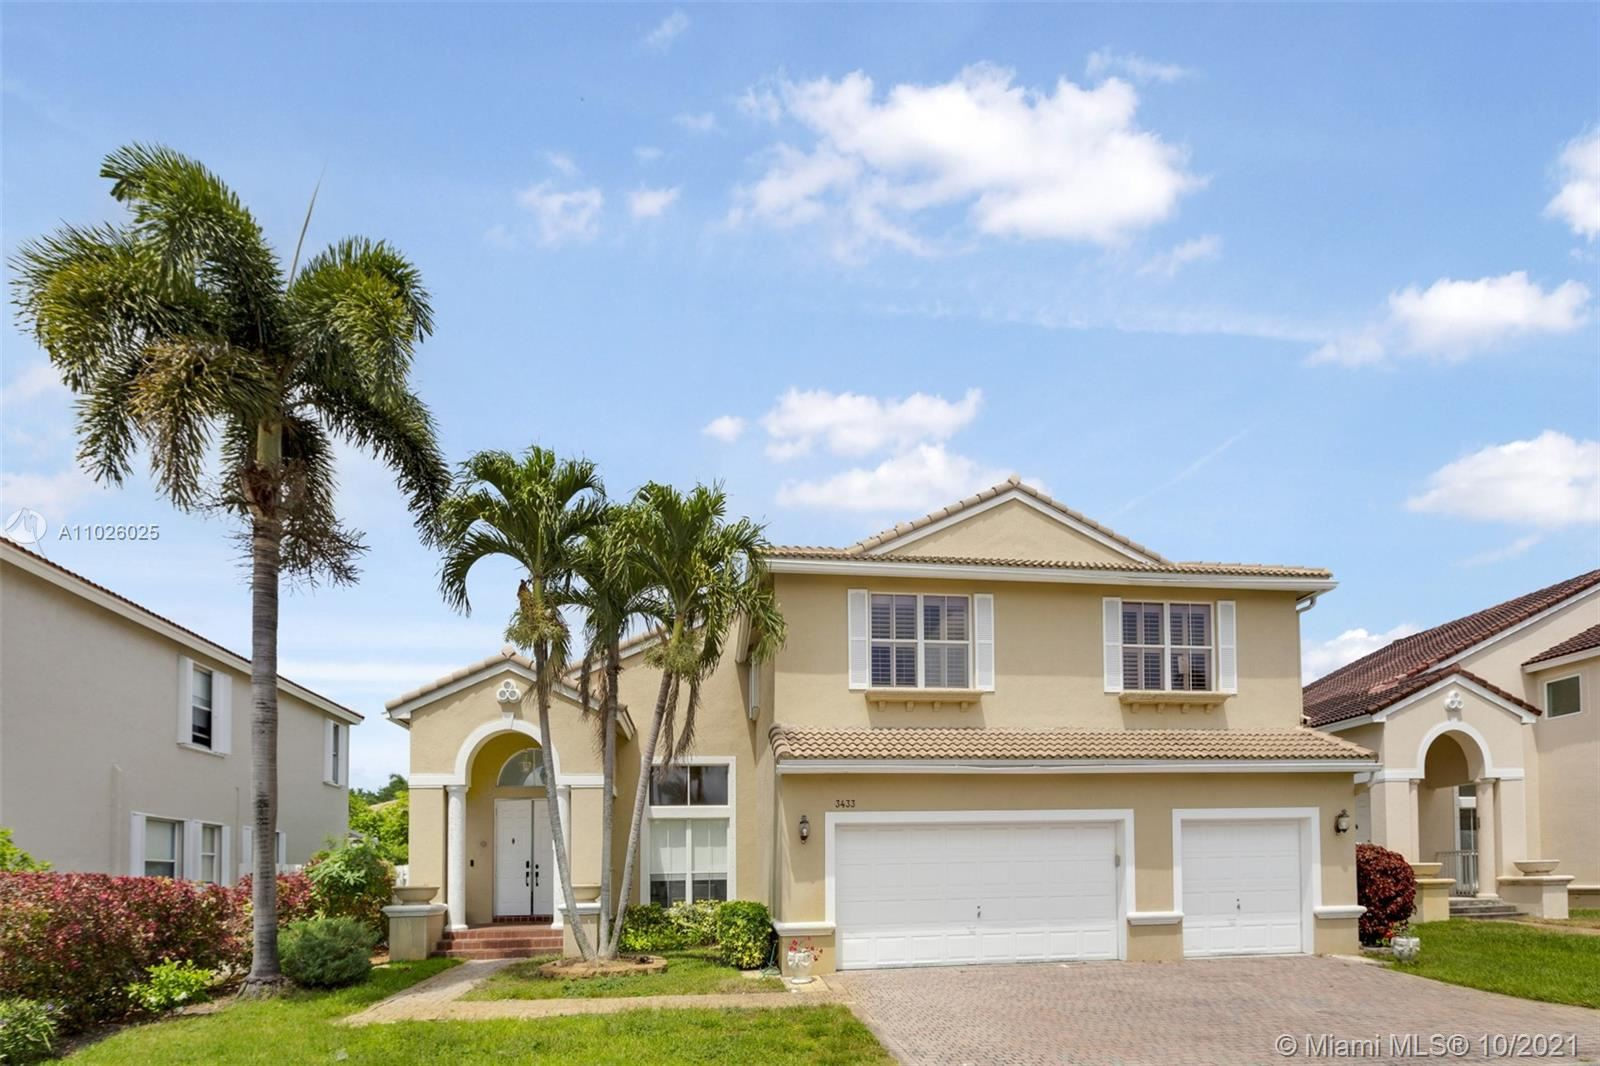 3433 SW 52nd Ave, Hollywood, FL 33023 - #: A11026025